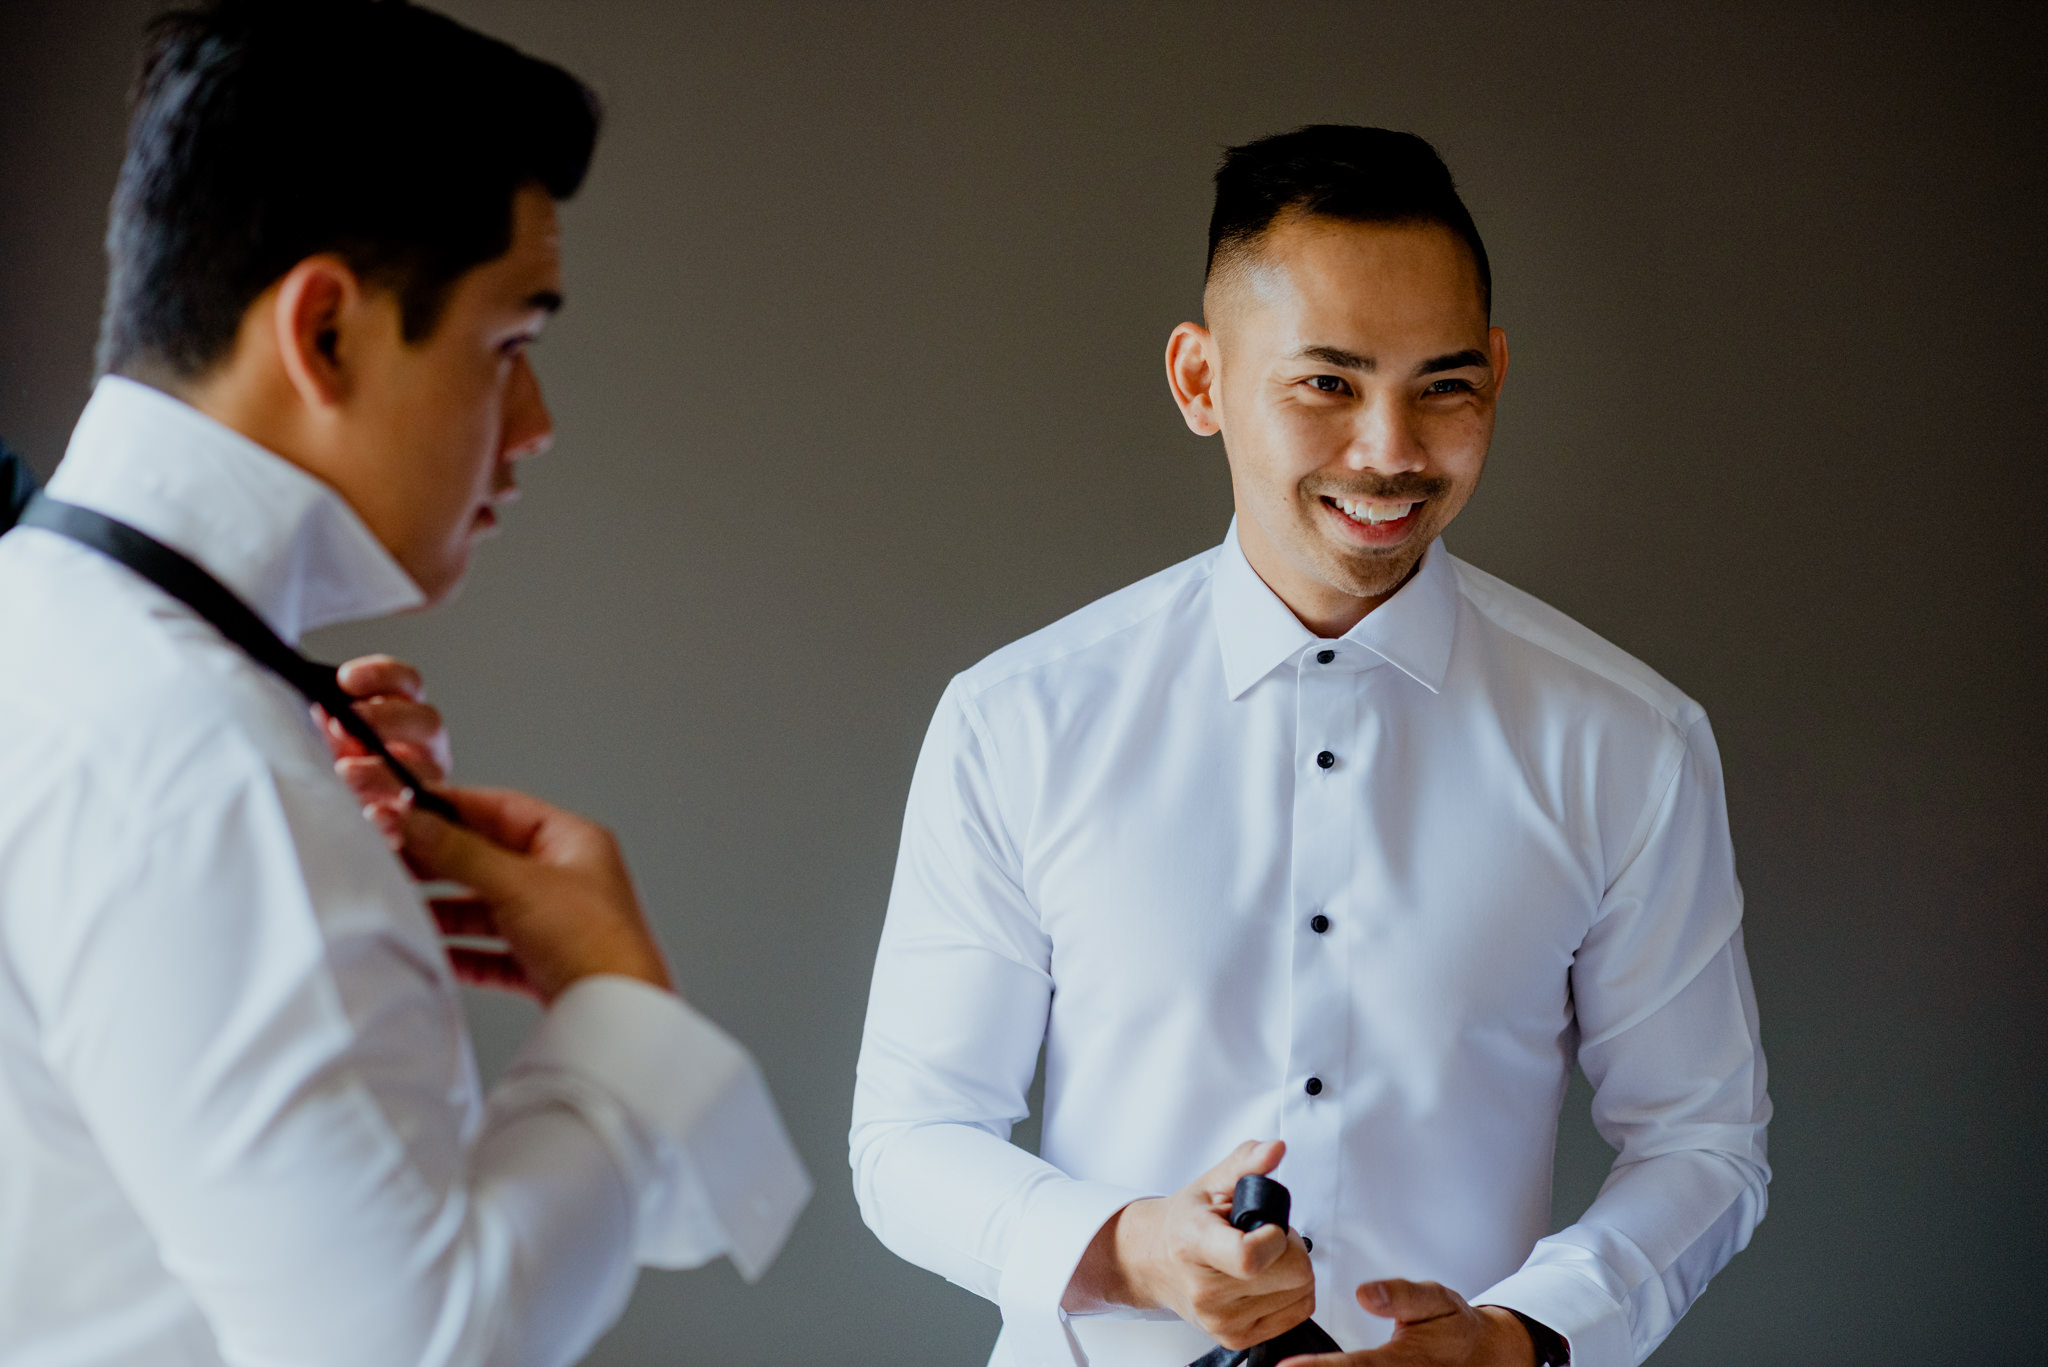 Two asian men laugh as they get dressed into formal clothes